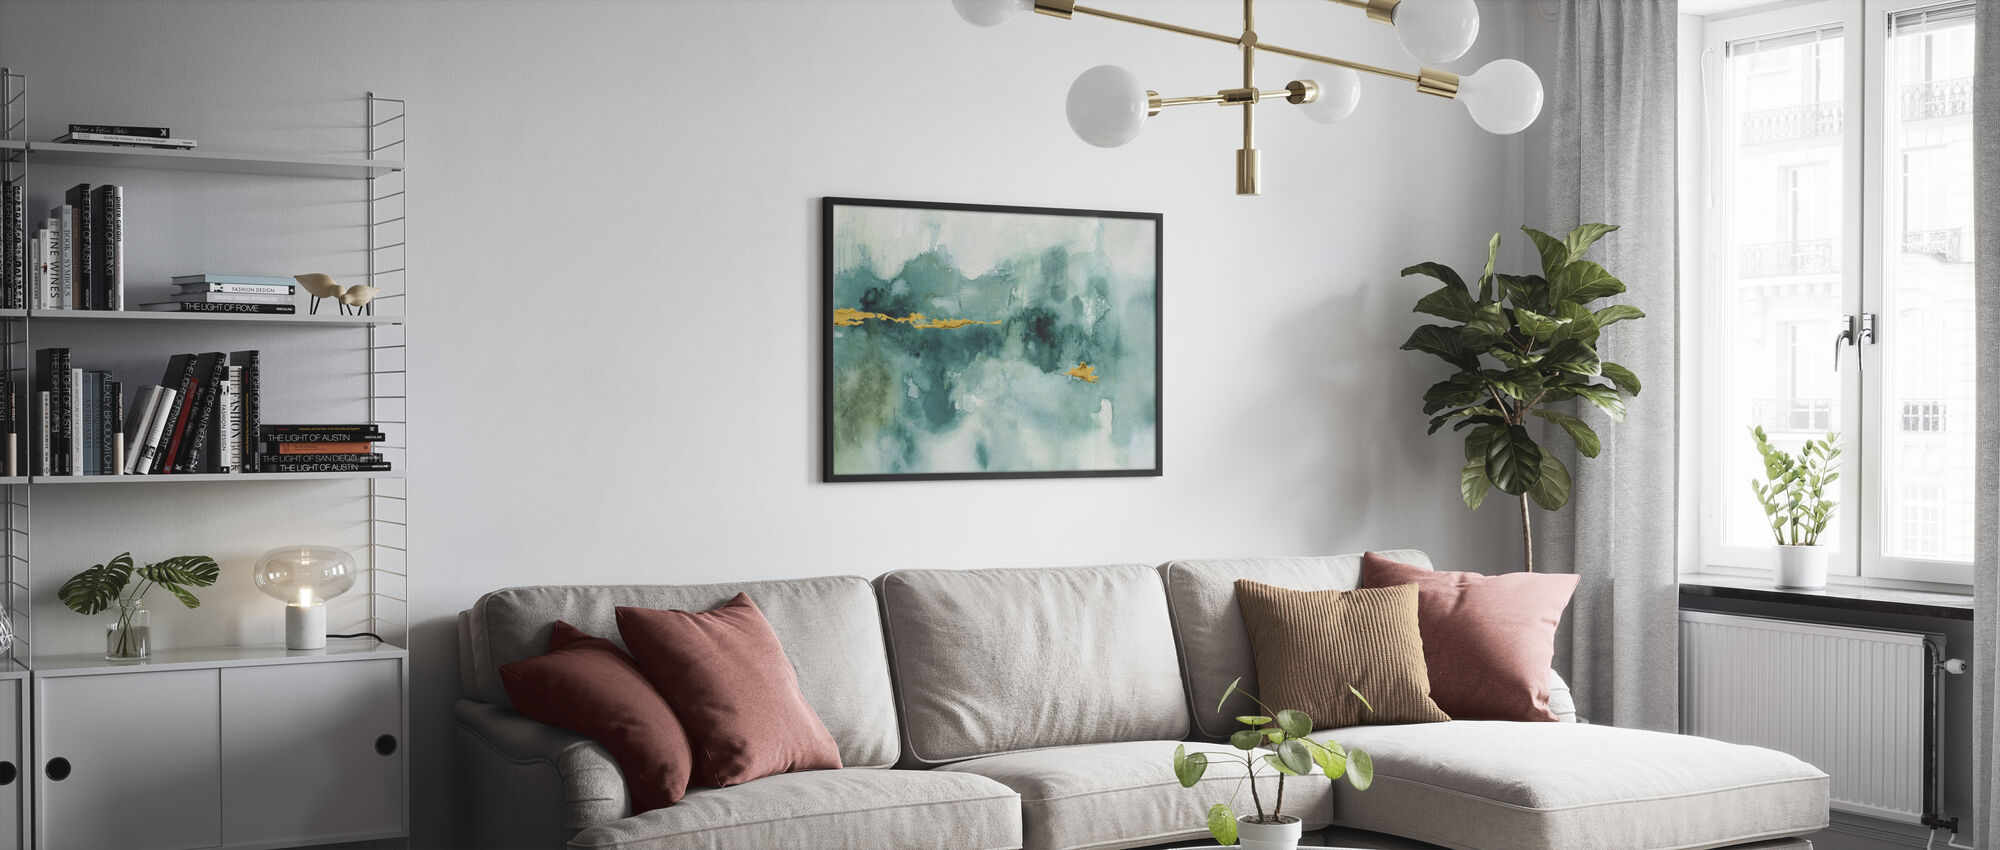 My Greenhouse Watercolor 3 - Framed print - Living Room